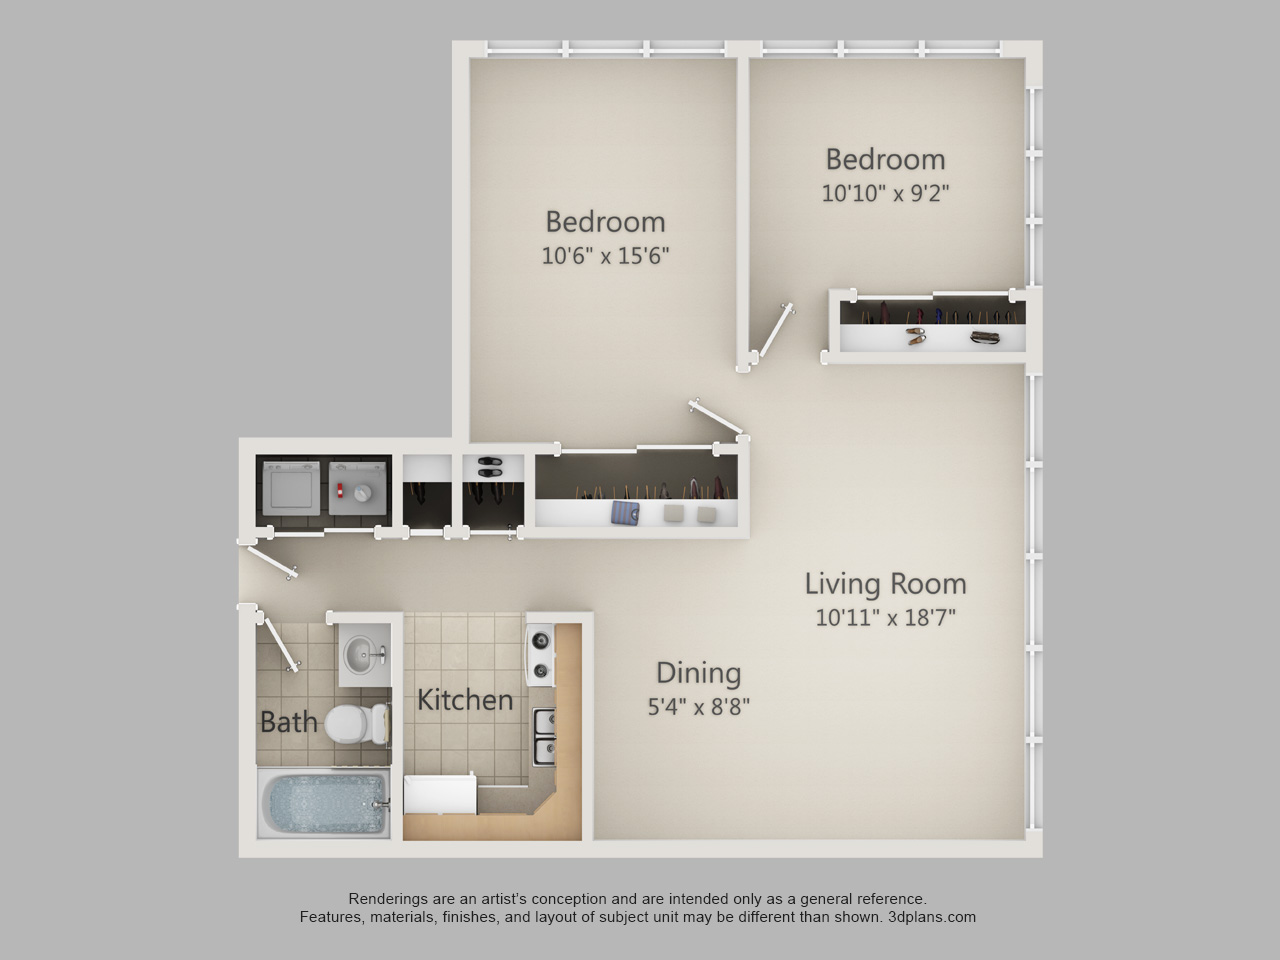 2 bedroom apartments in Allentown